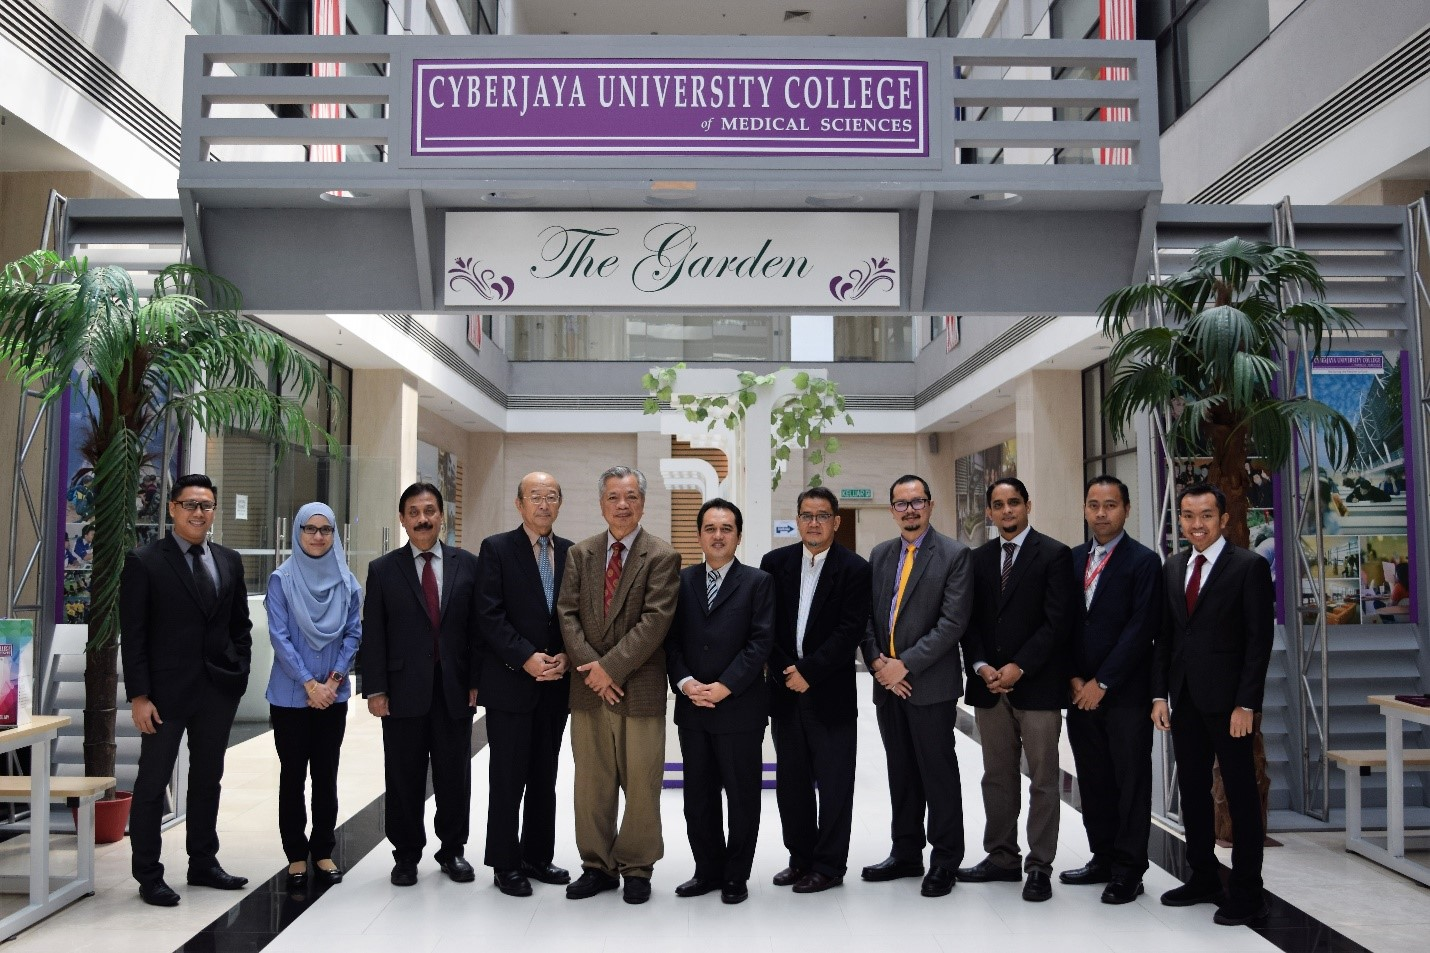 Present at the ceremony was President of Cyberjaya University College, Professor Dato' Dr. Mohamad Abd Razak, Deputy President of Academic Affairs & Internalisation and Research & Commercialization (AIARC), Professor Dato' Dr. Shaharuddin Mohd, Deputy President of Student Affairs & Alumni, Professor Dr. Abdul Latiff and DreamEDGE Chief Executive Officer (CEO), En. Khairil Adri Adnan along with other representatives